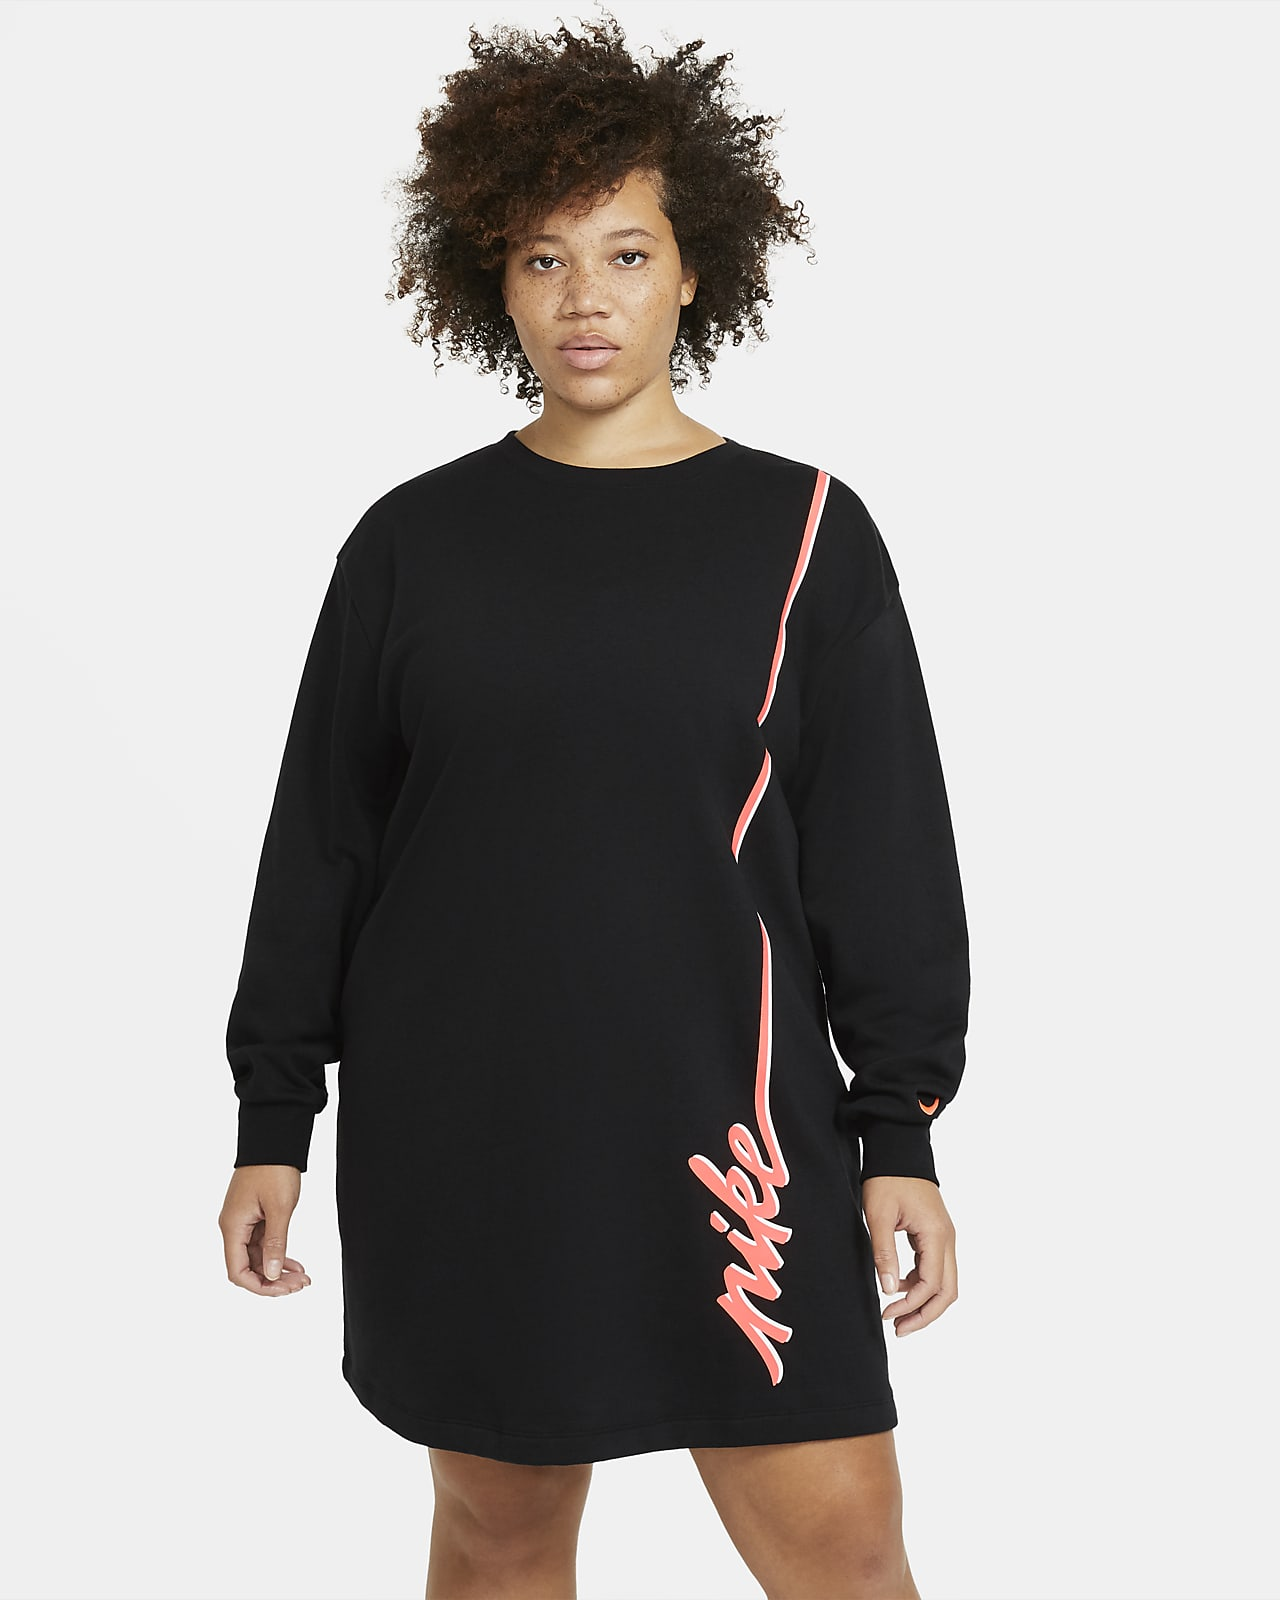 Nike Sportswear Women's Fleece Dress (Plus Size)